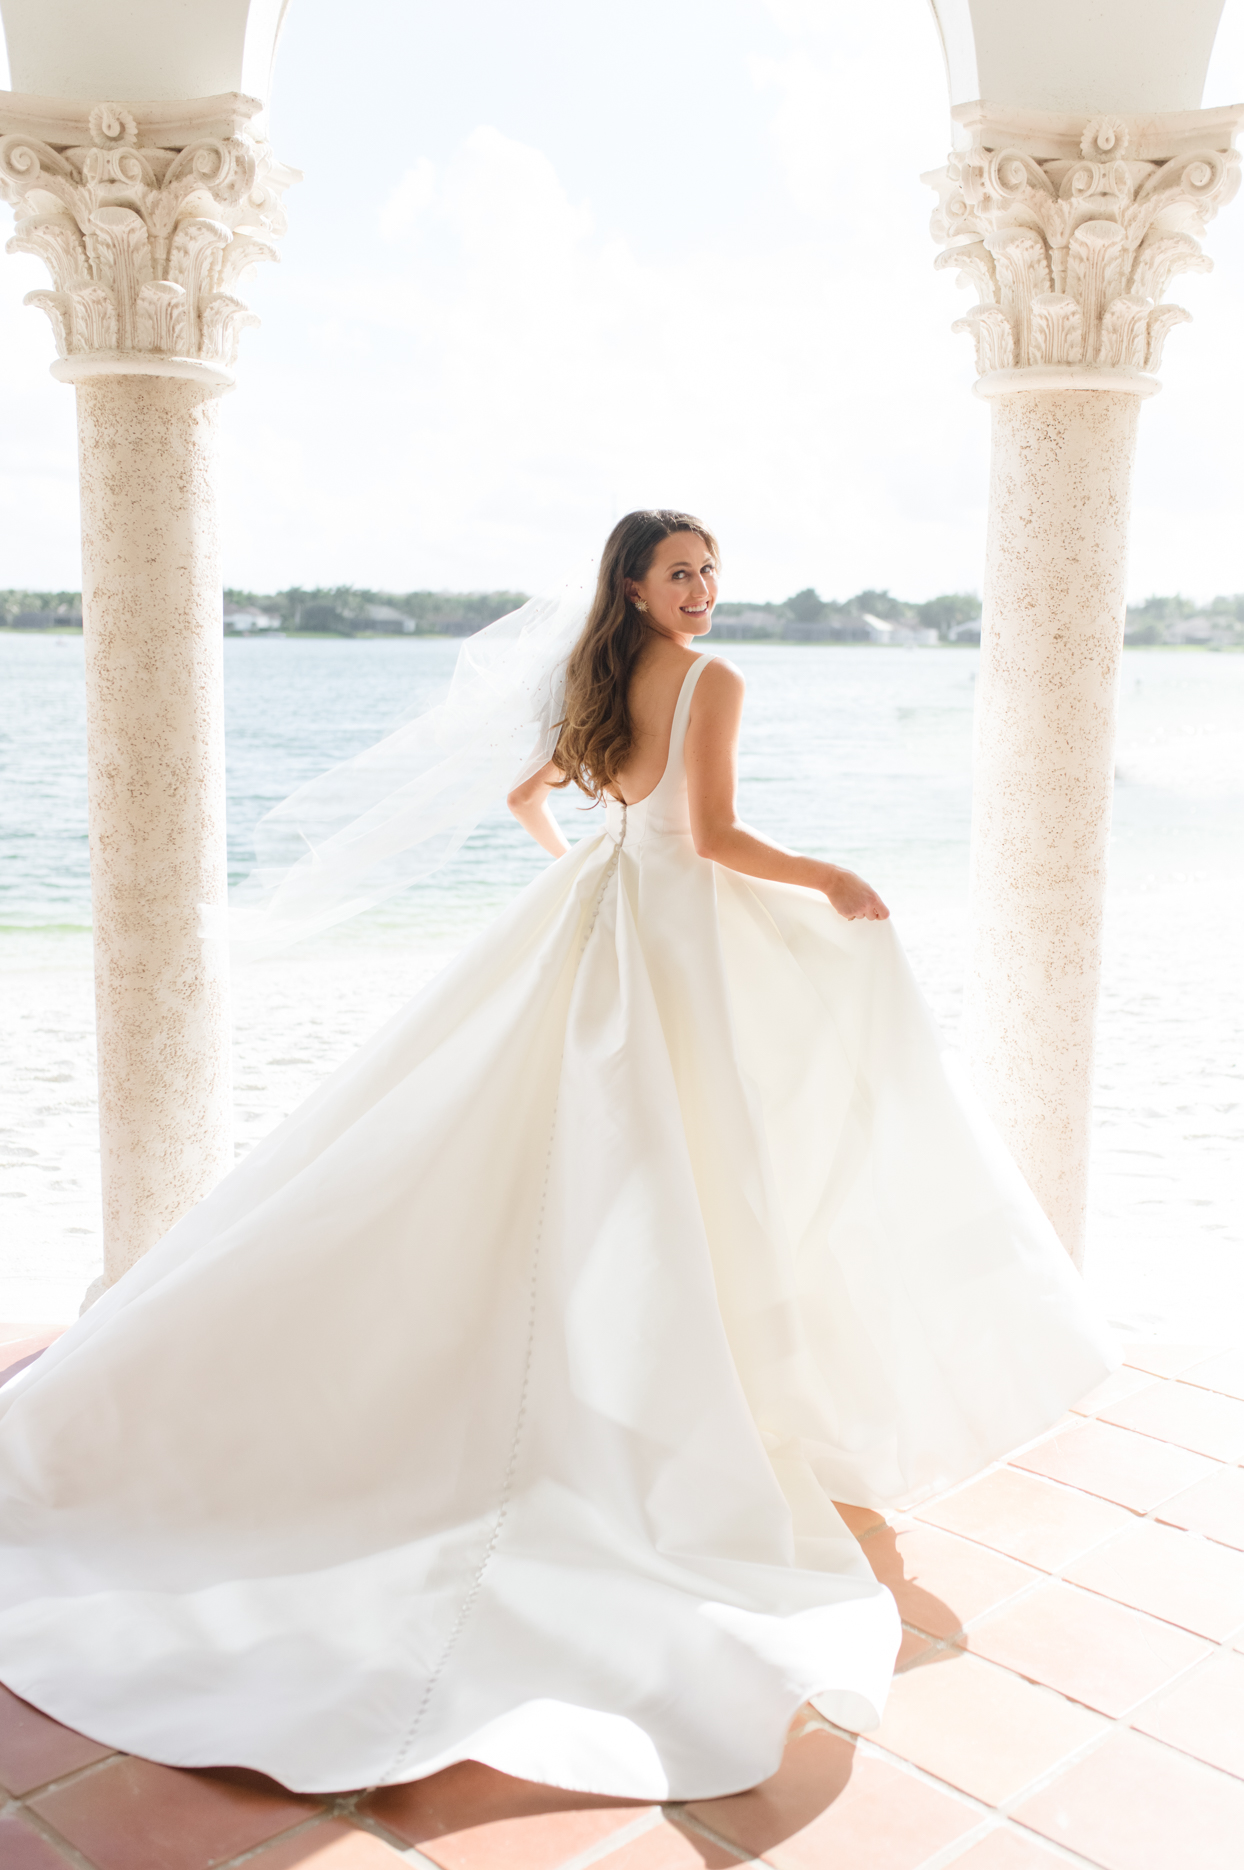 bride in flowing white wedding dress by the water